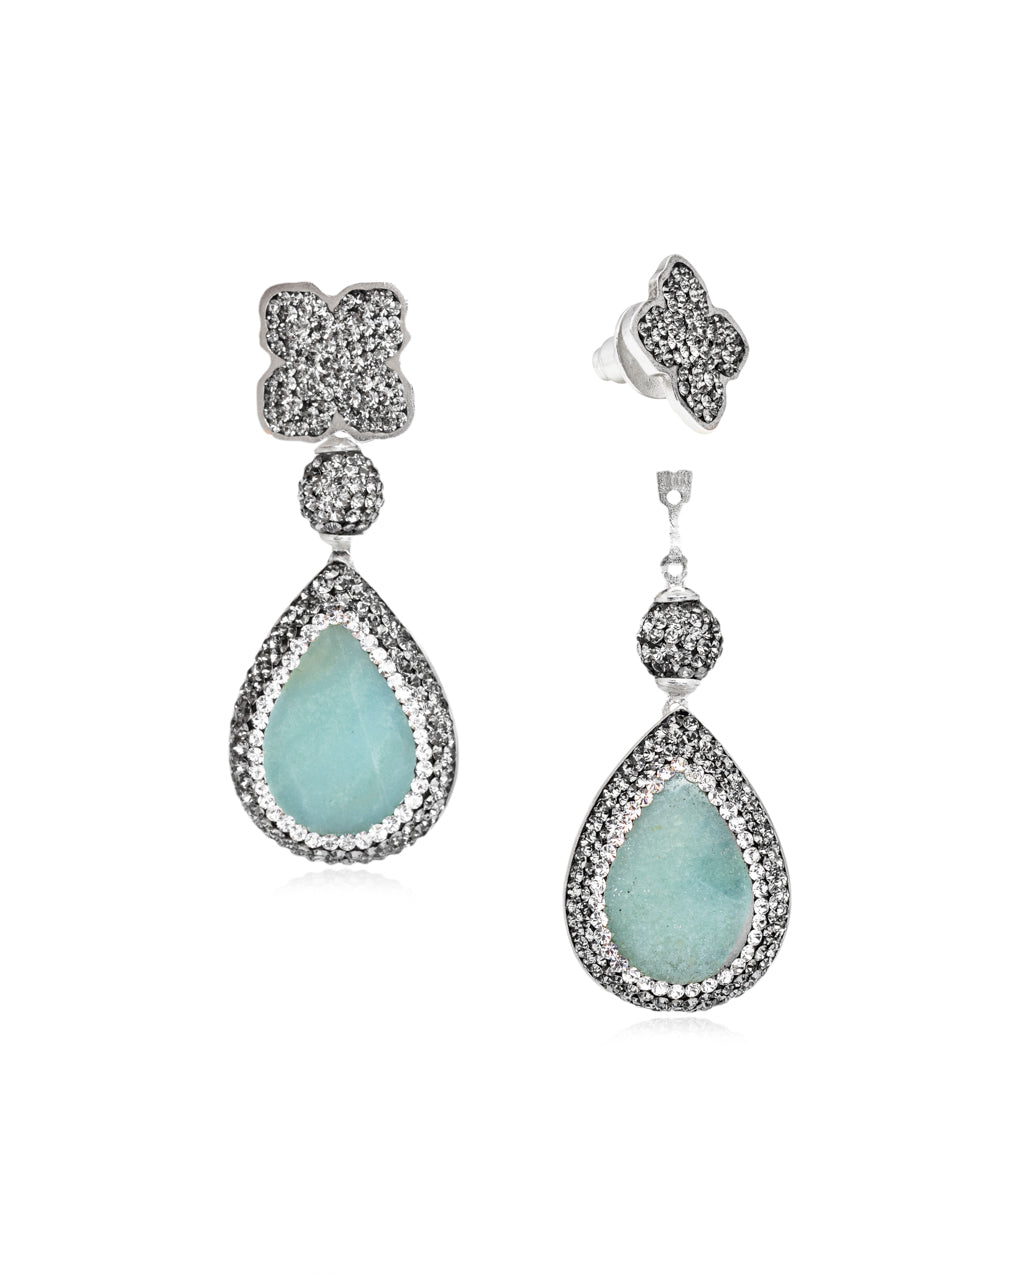 Signature Gala Earrings